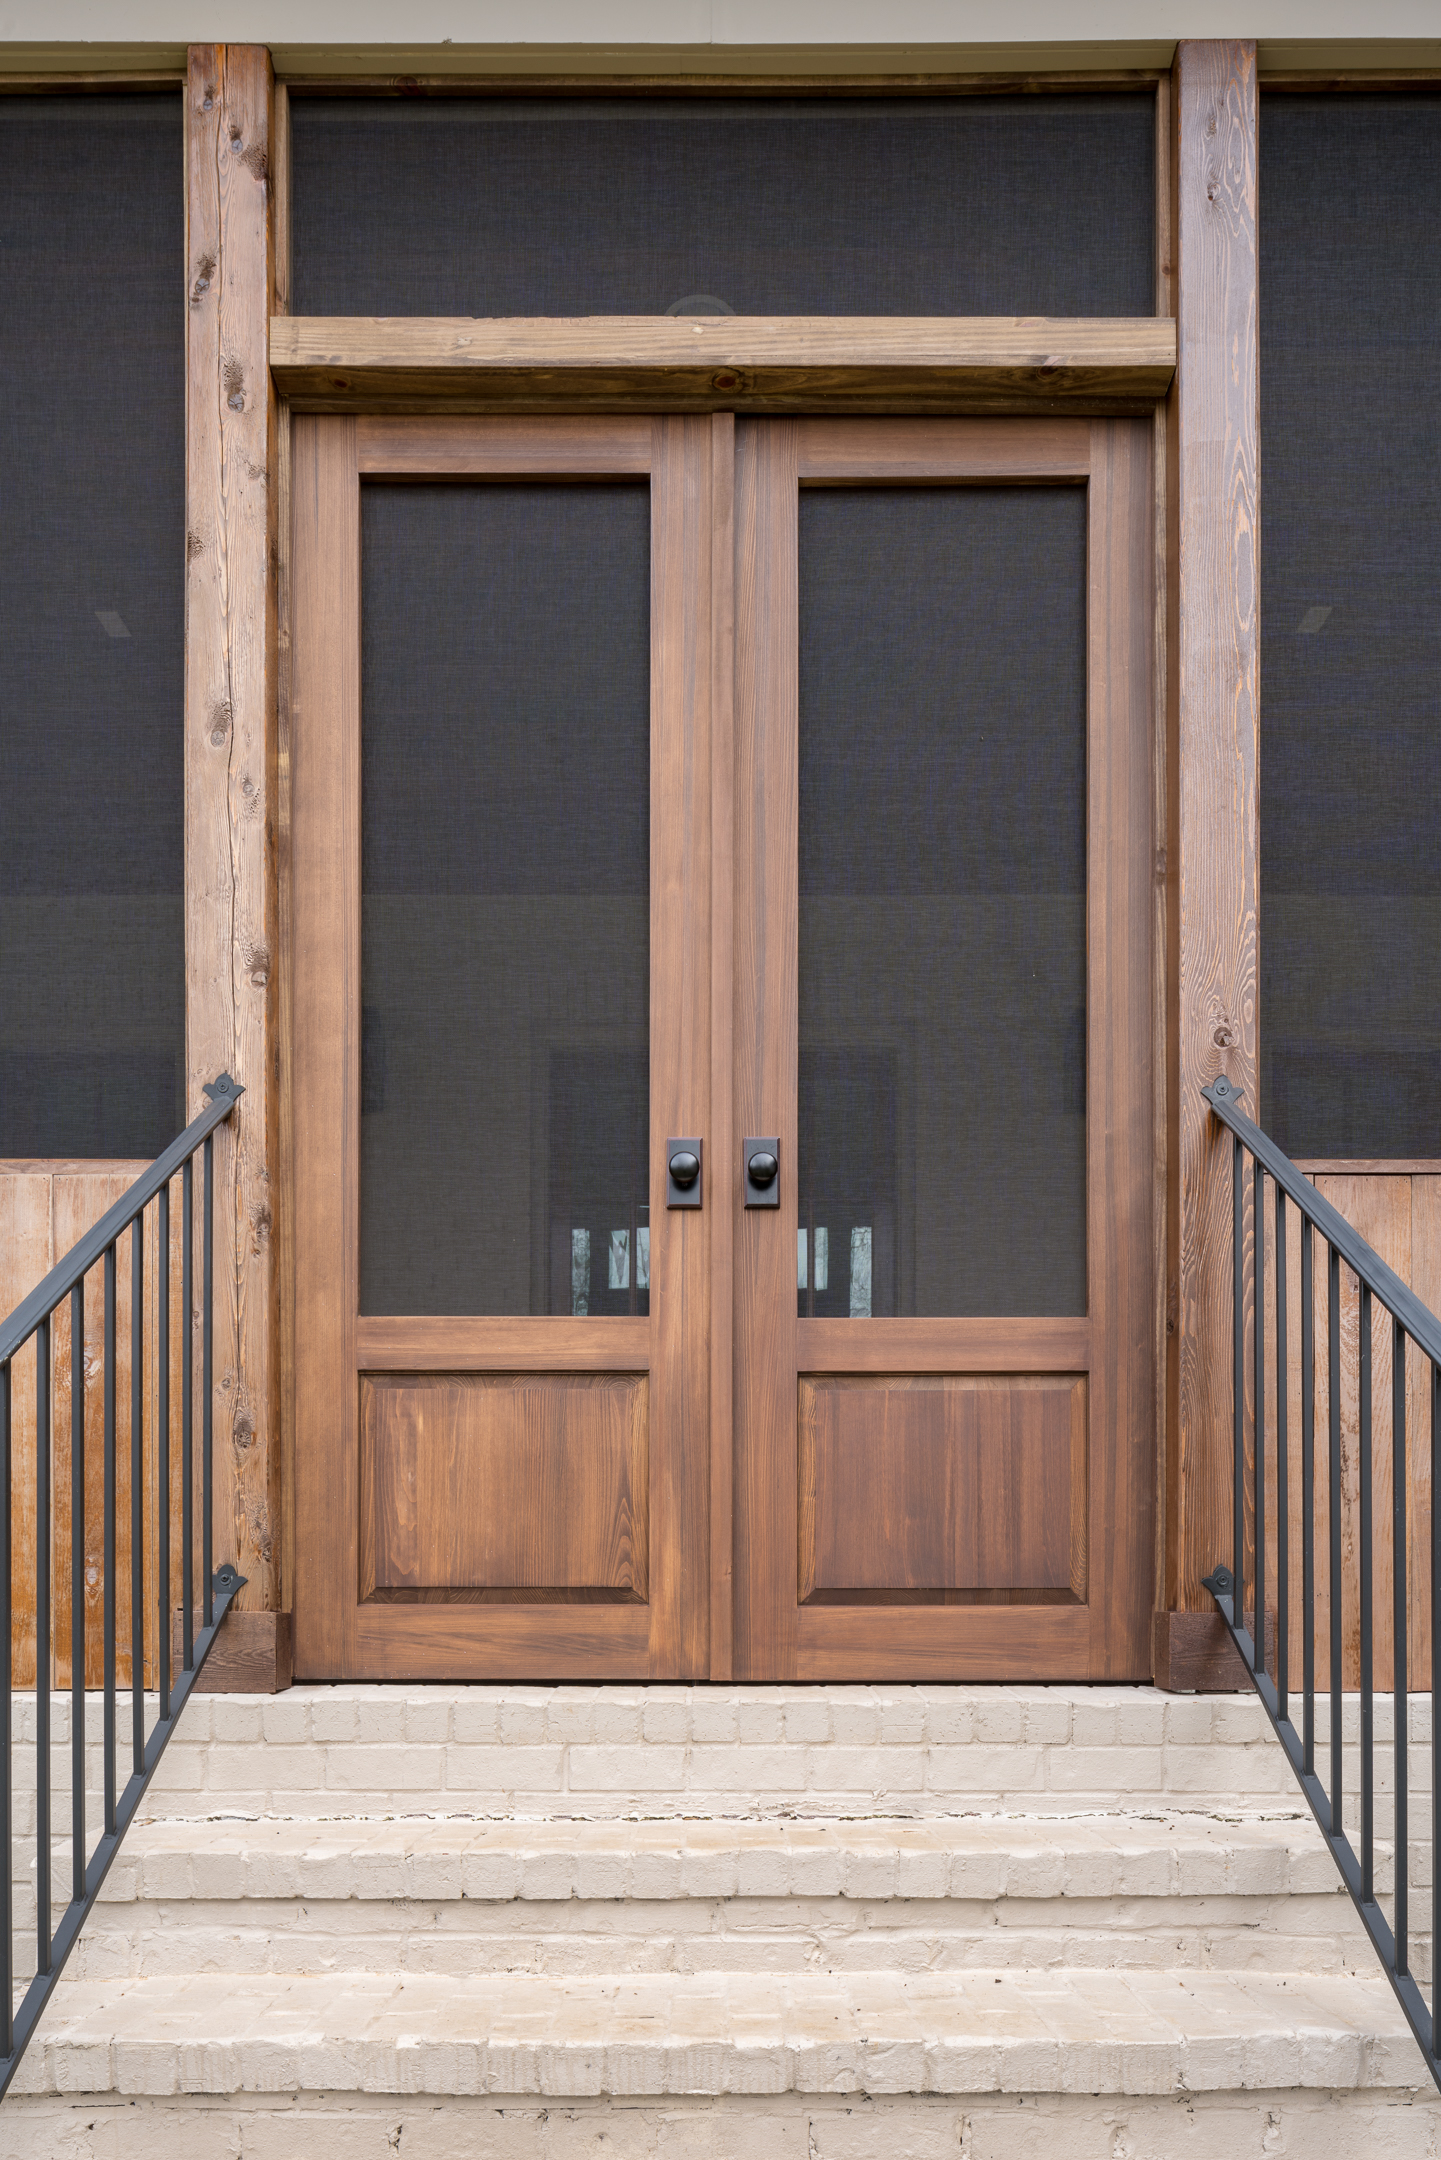 Raised Panel Double Screen Doors - The Porch Company